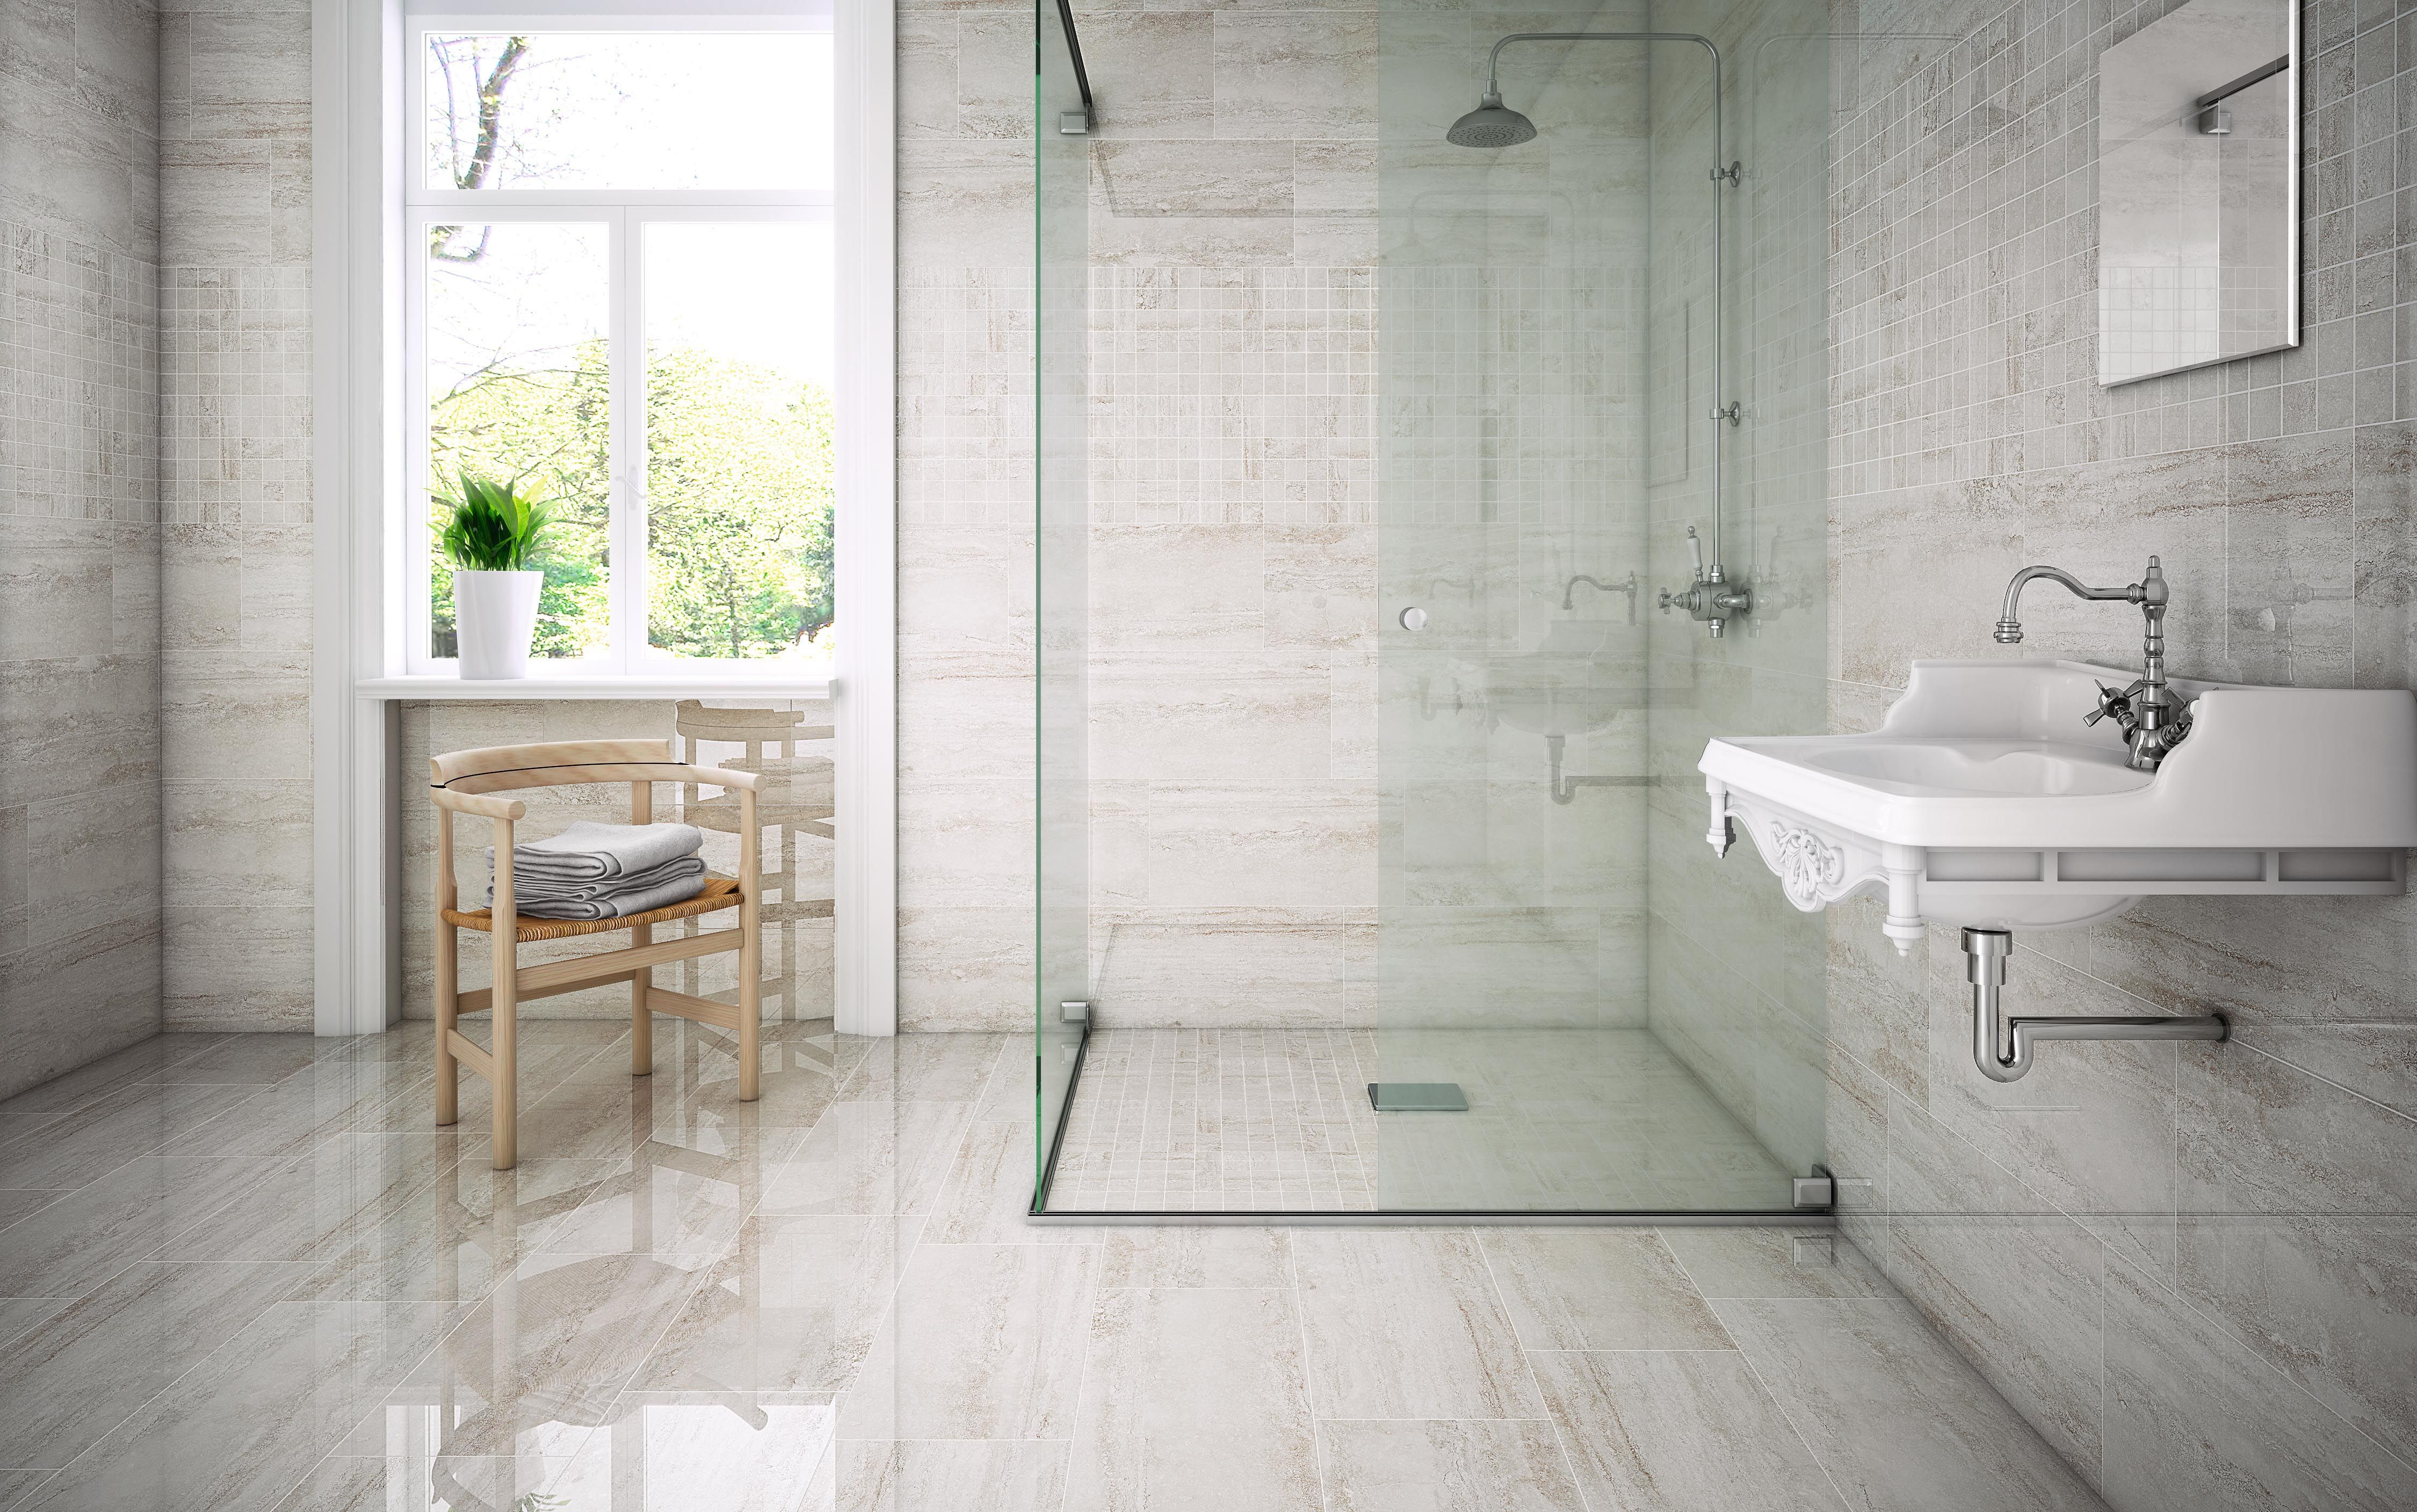 Stn ceramica from tile of spain recently introduced eterna for Bathroom tiles spain